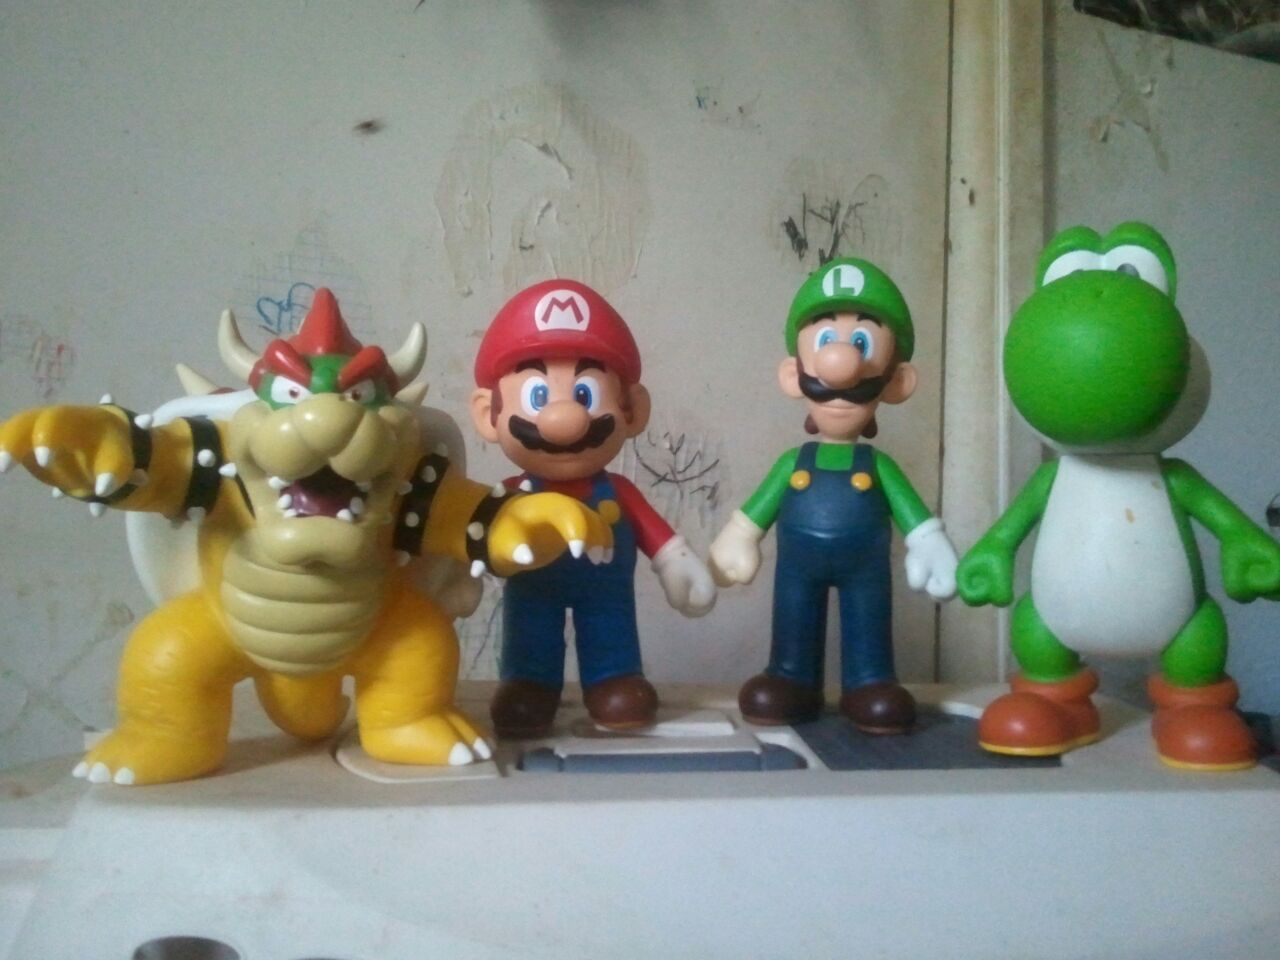 My Super Mario Super Size Figure Collection by